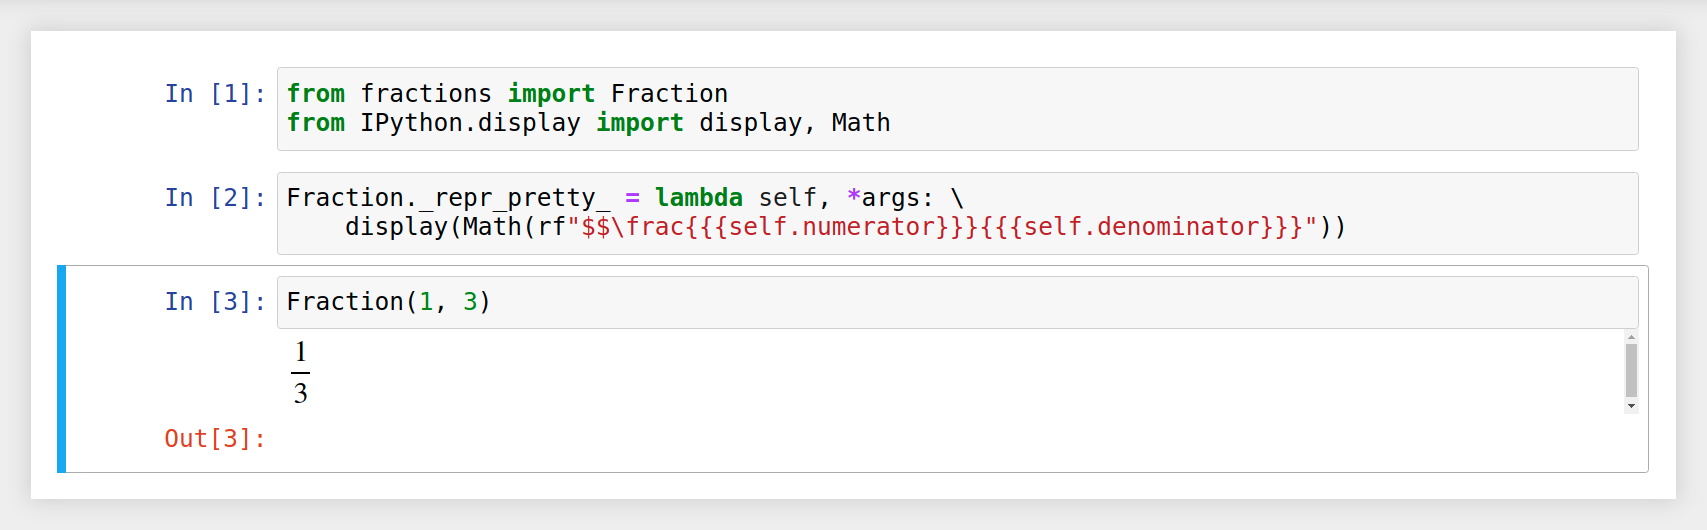 LaTeX Fraction In a Jupyter Notebook